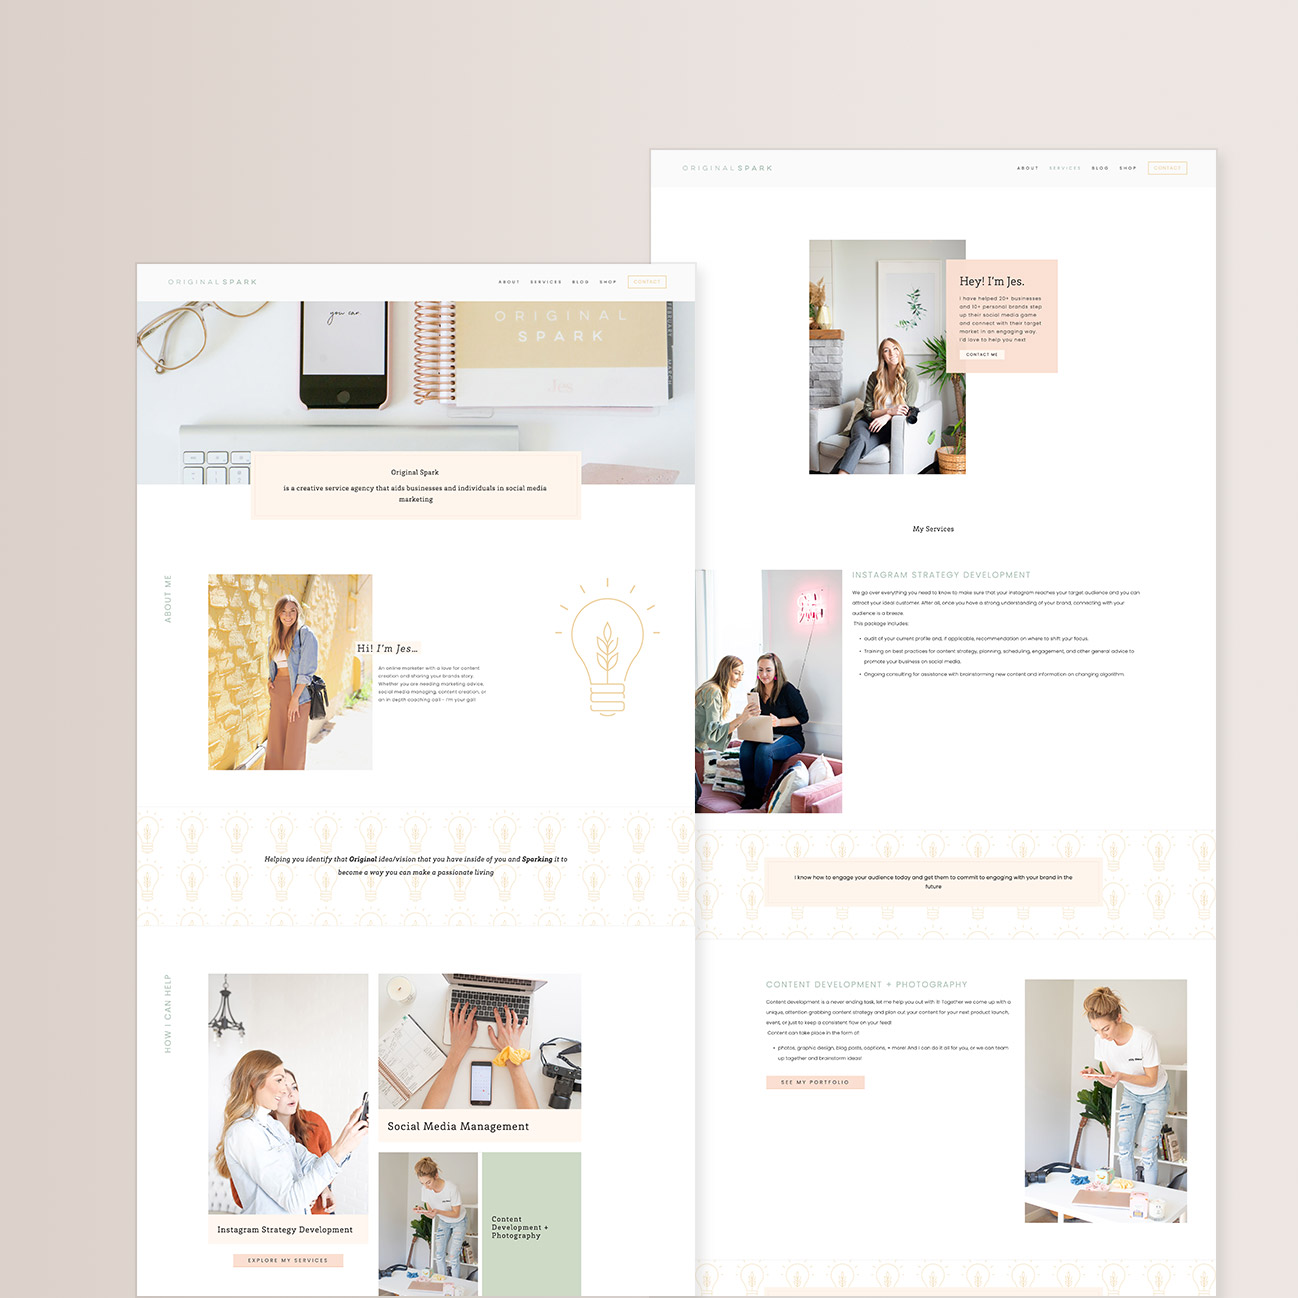 Squarespace redesign by Jodi Neufeld Design